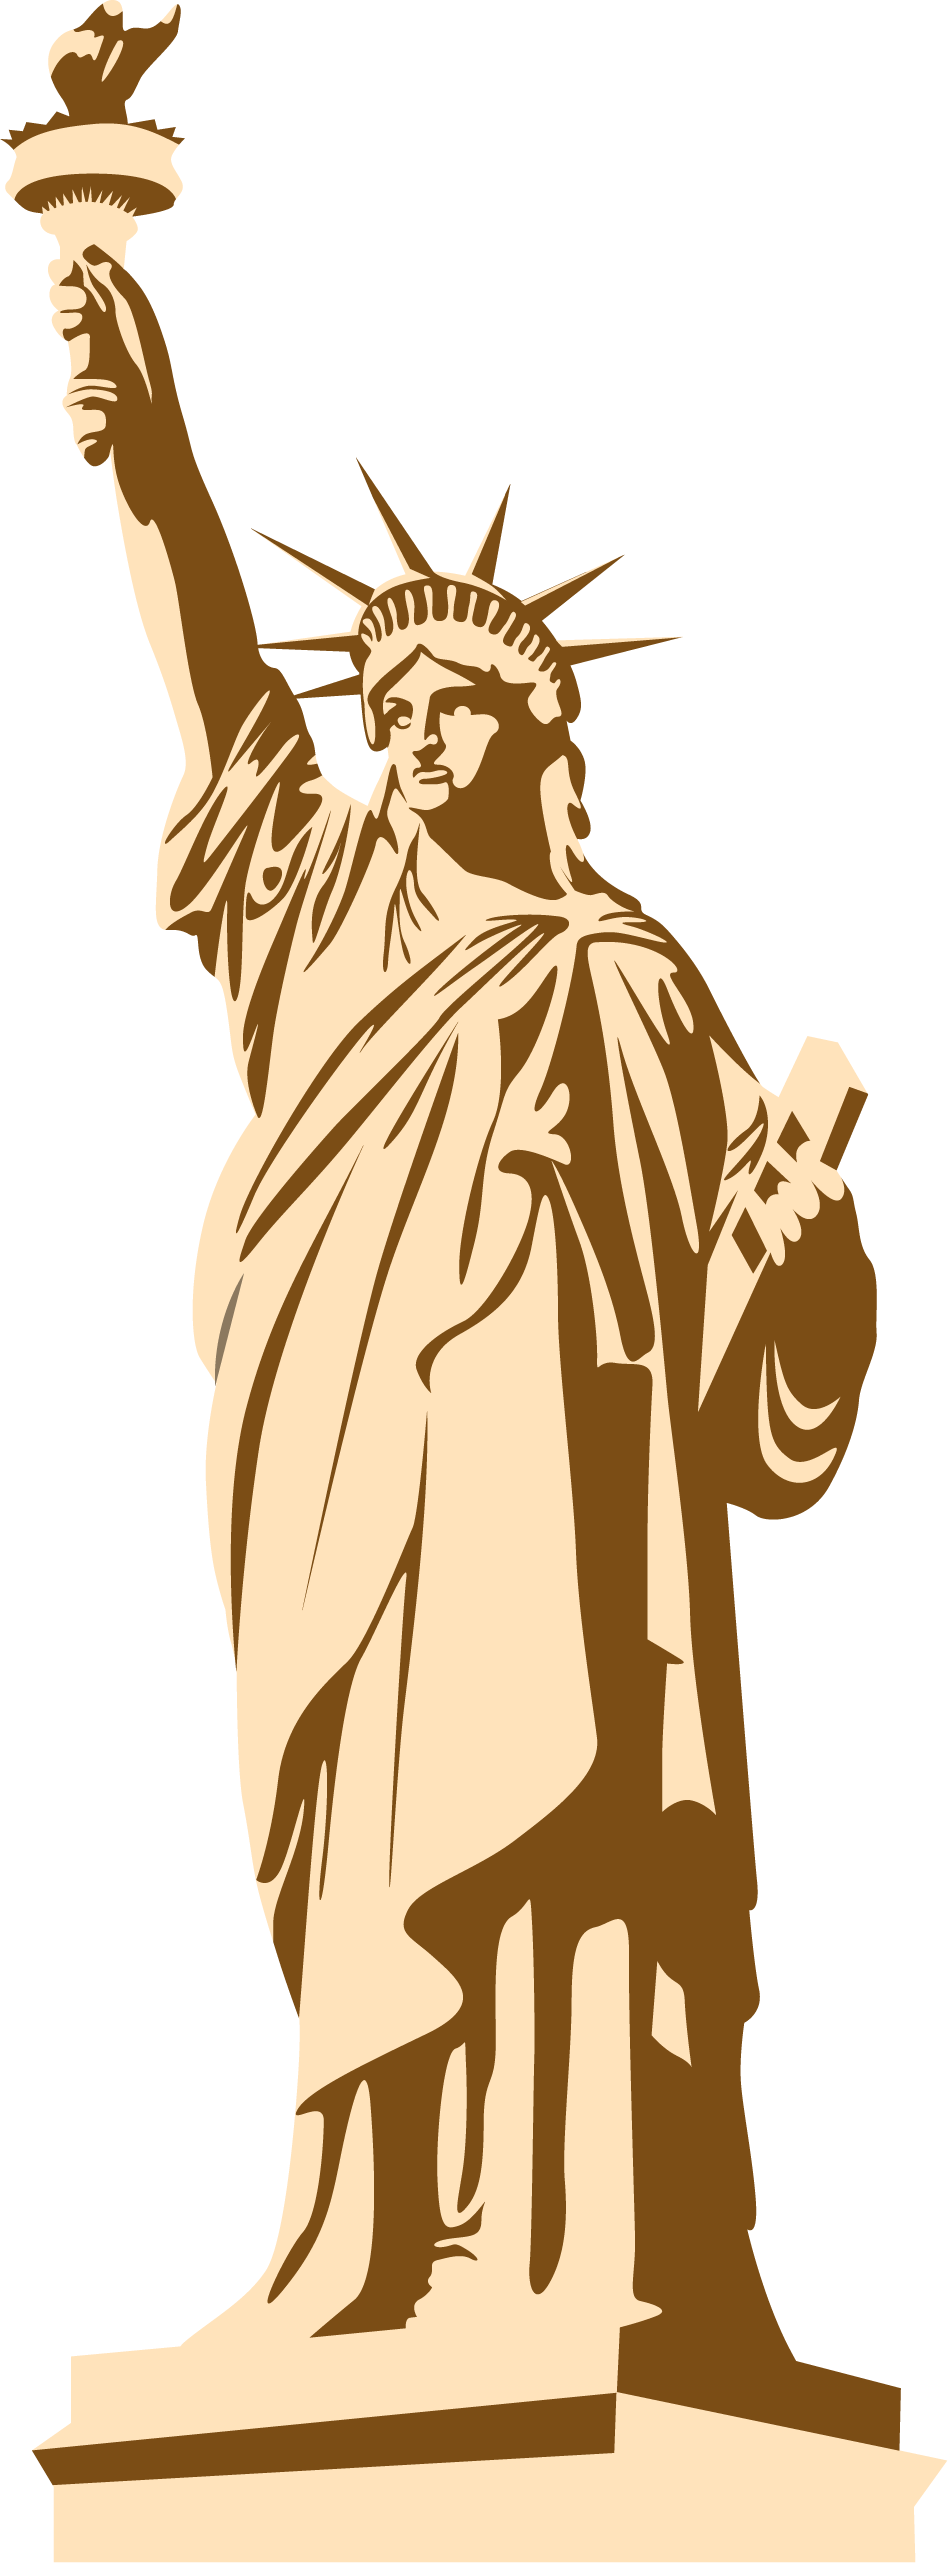 Statue of liberty clipart individual liberty. Png transparent free images